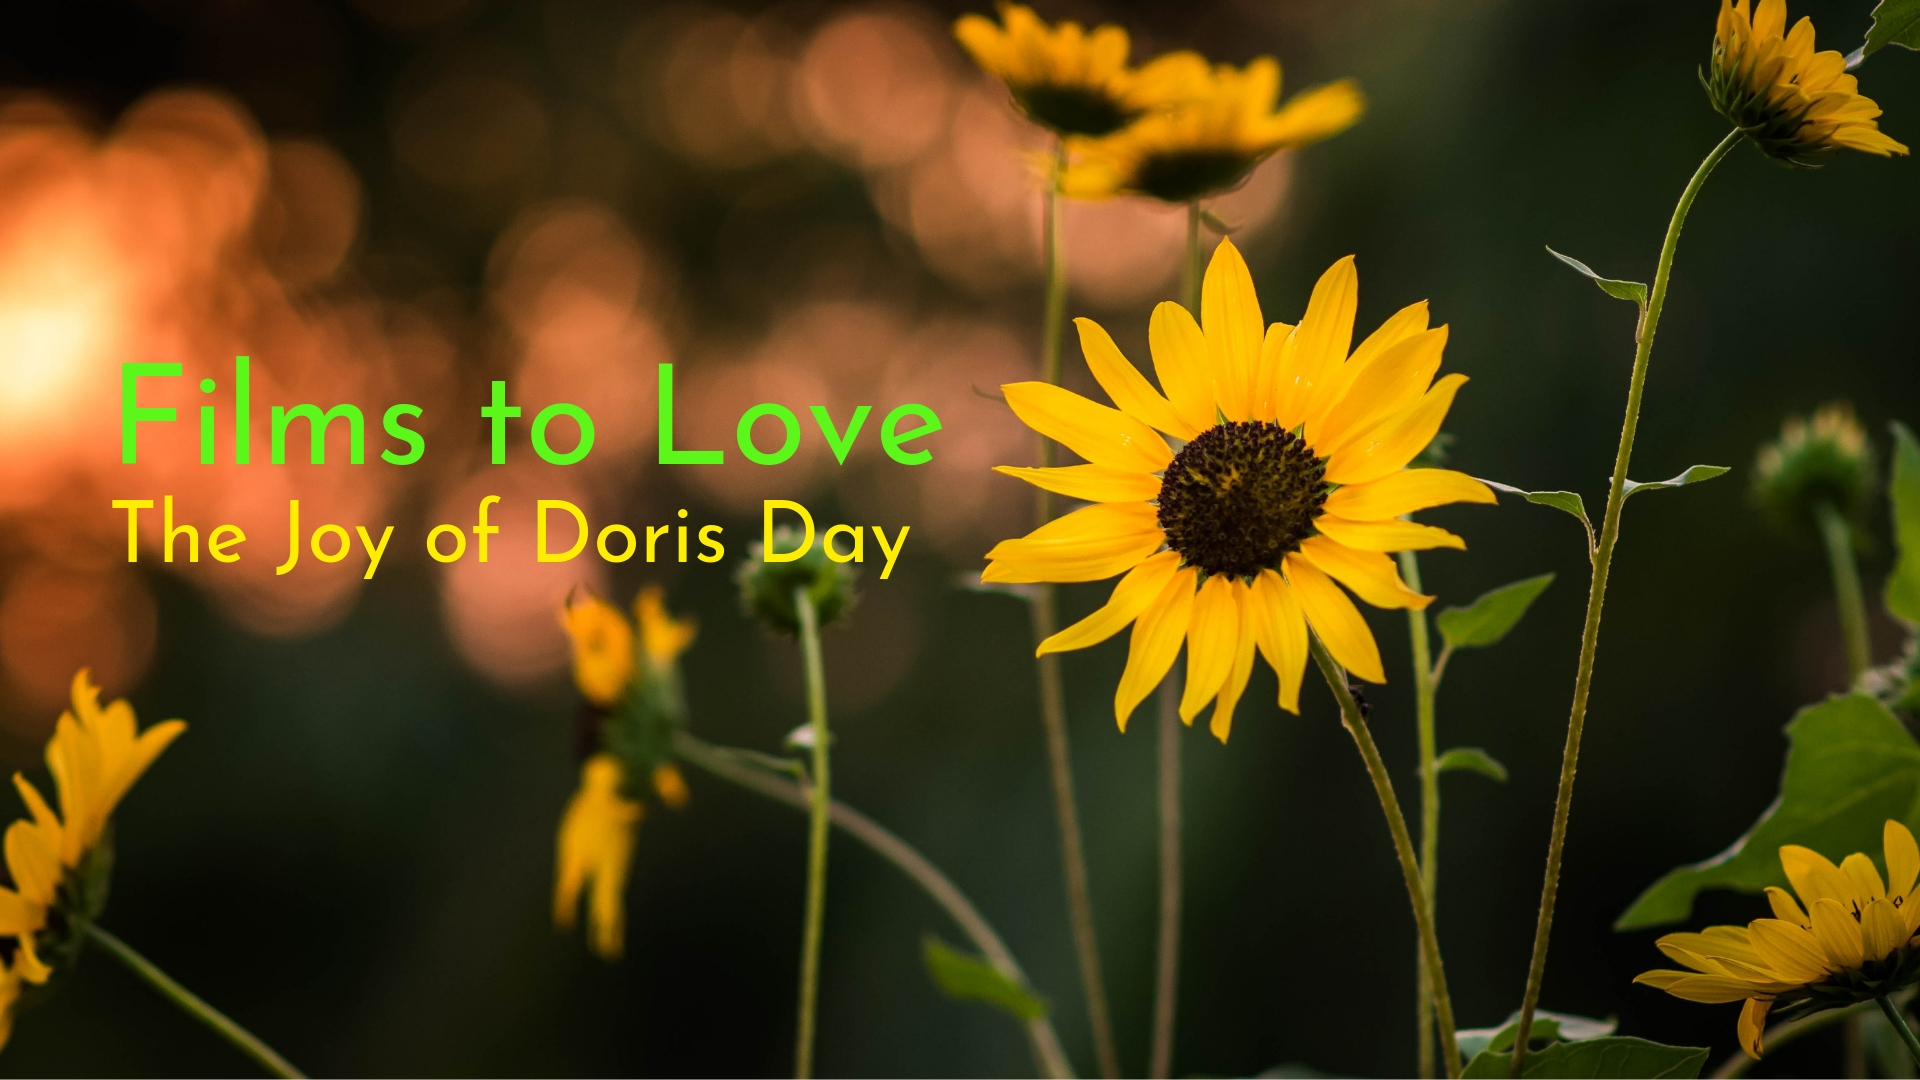 banner-films-to-love-the-joy-of-doris-day-01.jpg